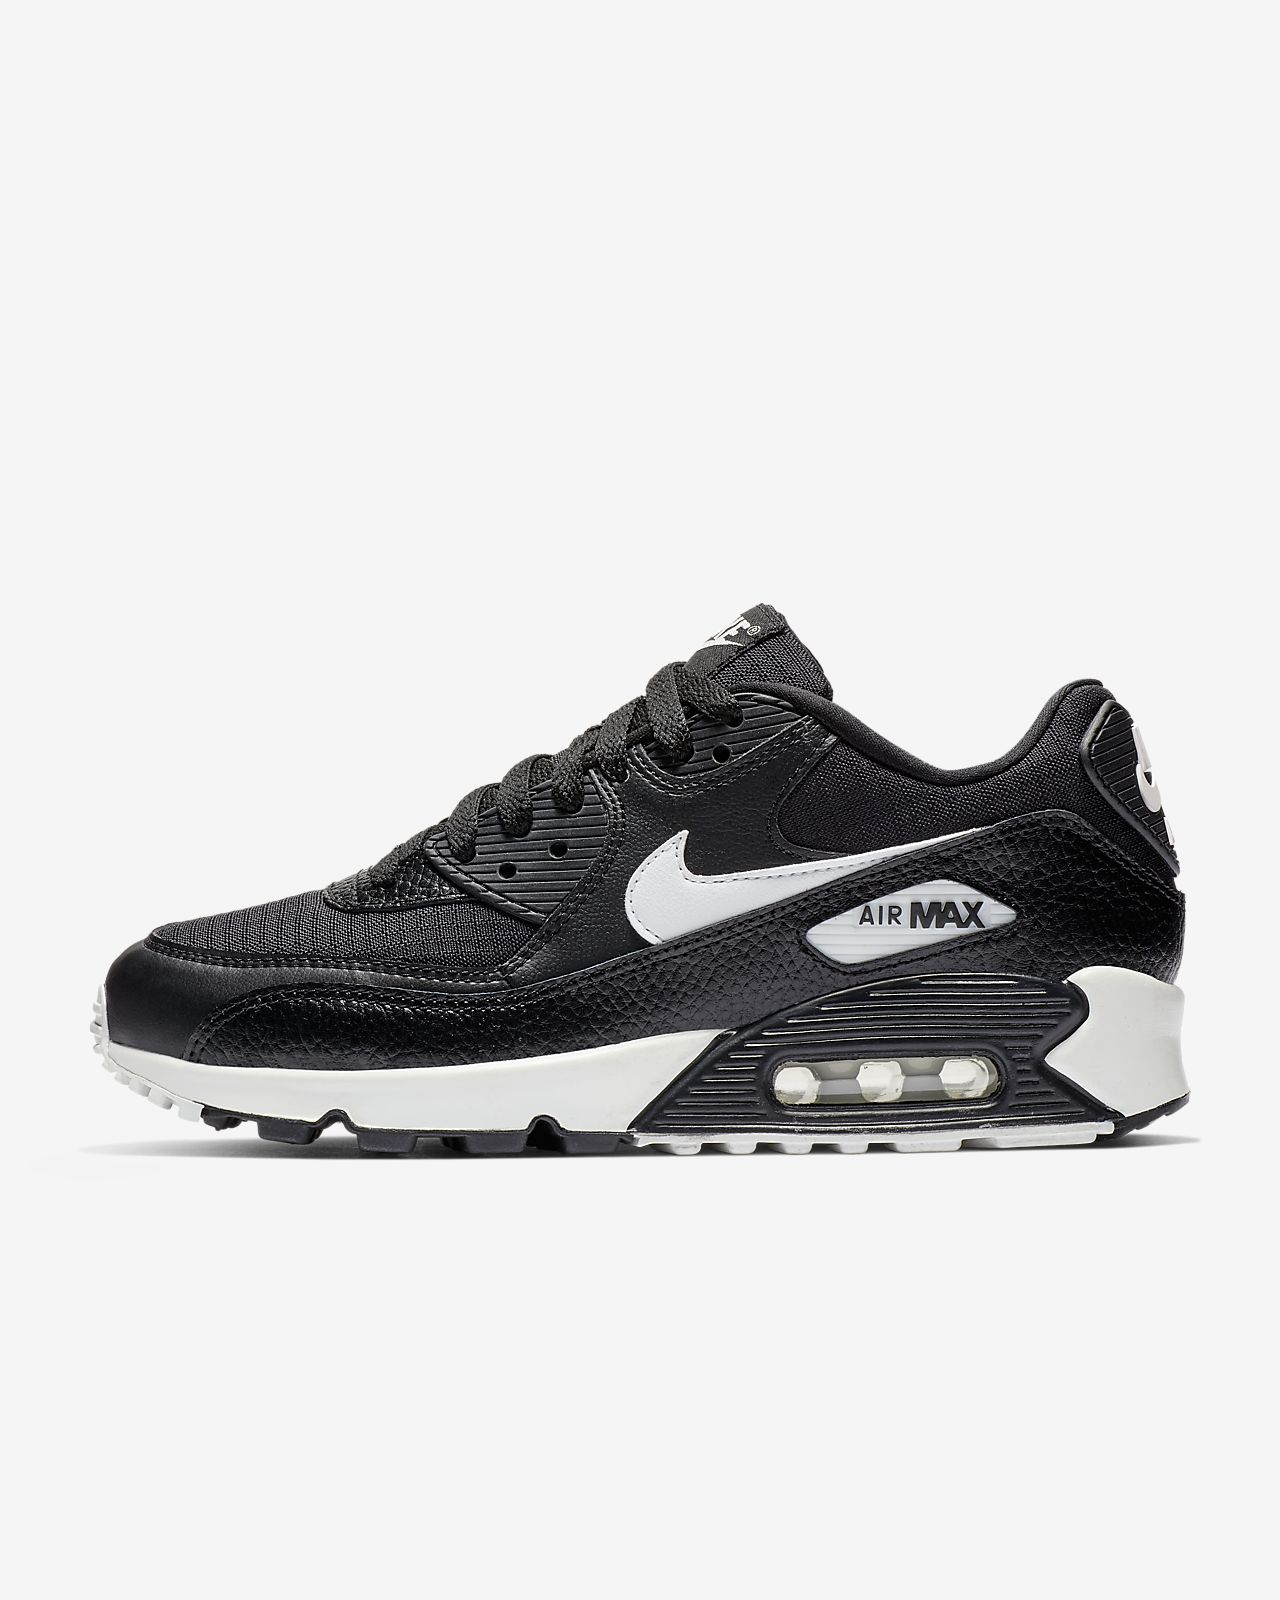 save off 7d8e1 b5dbf Nike Air Max 90 Women s Shoe. Nike.com ZA